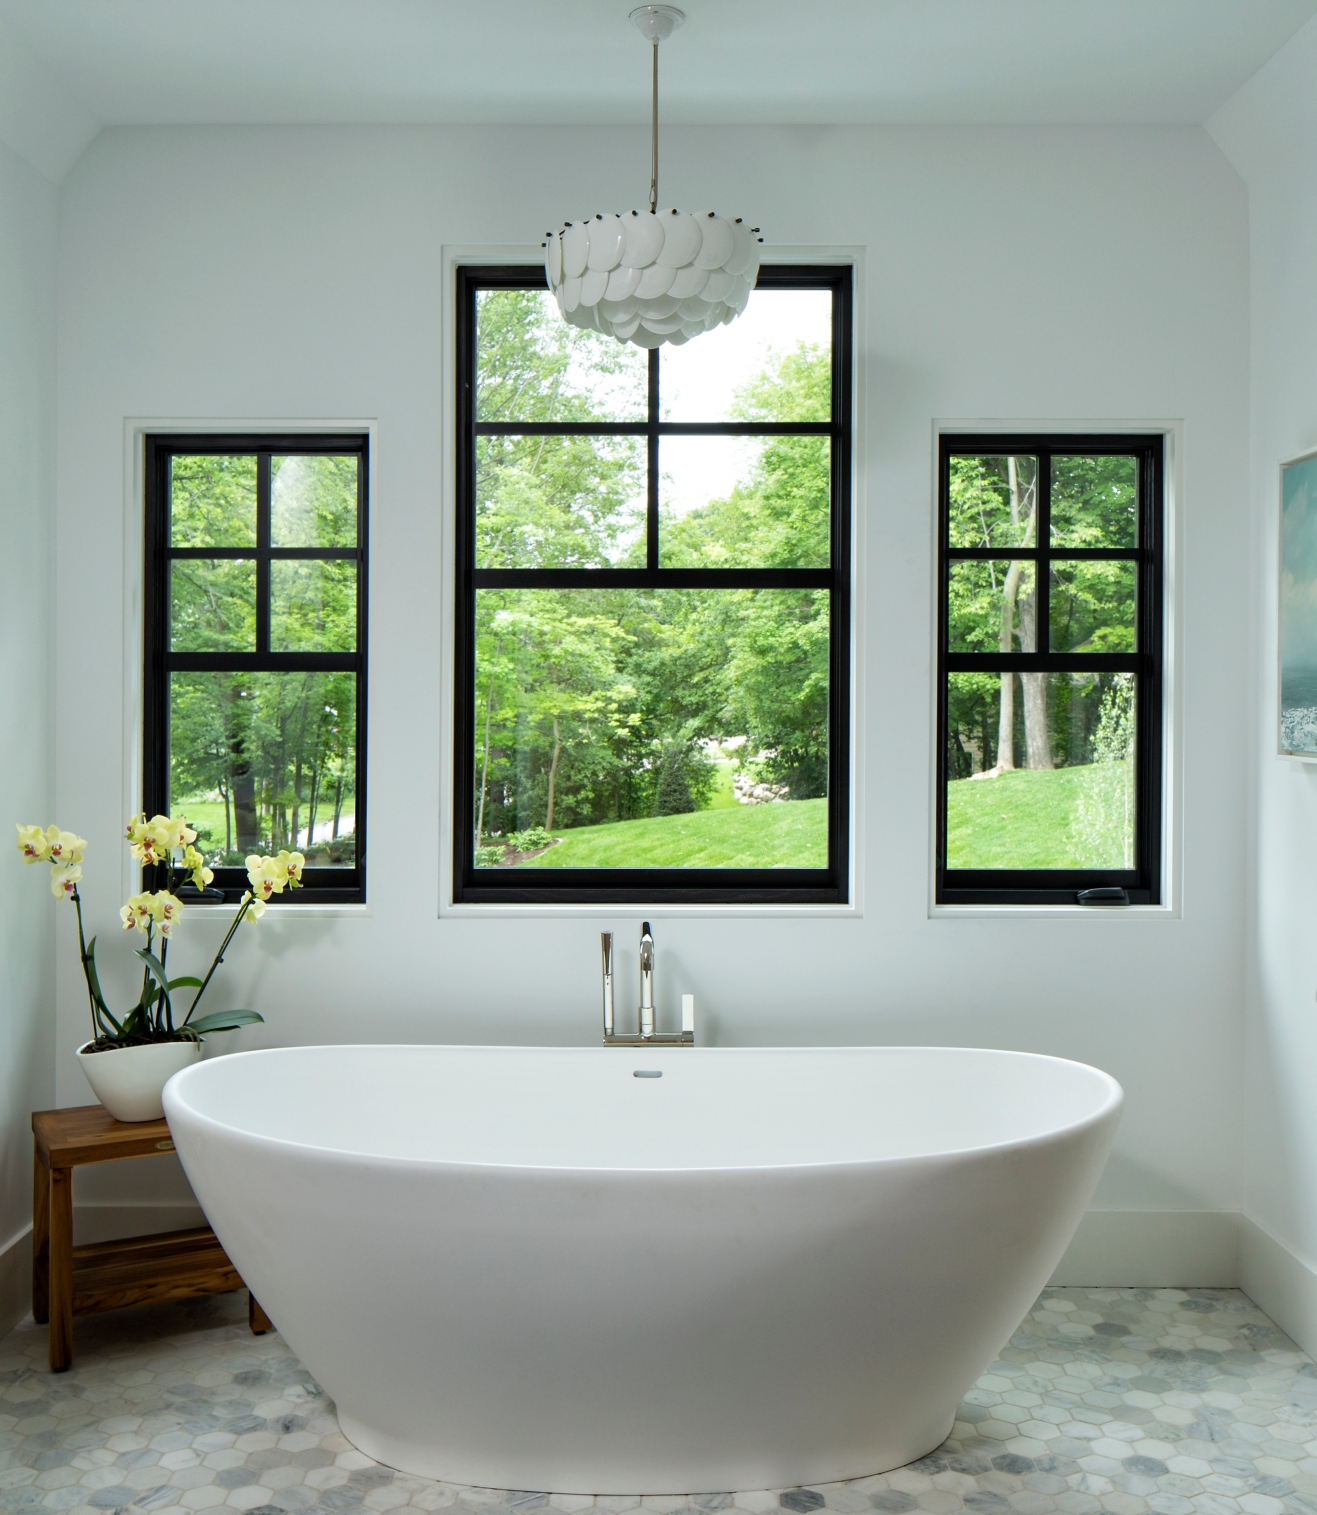 Large Marvin Contemporary Casement Windows in Bathroom